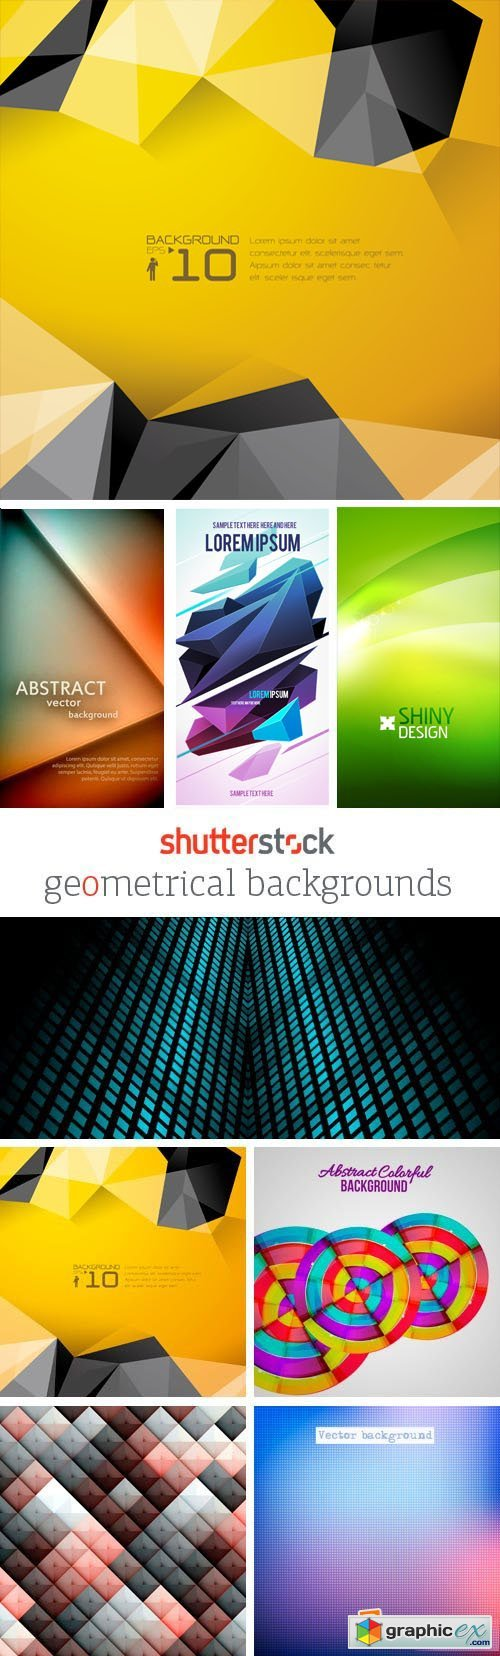 Amazing SS - Geometrical Backgrounds, 25xEPS